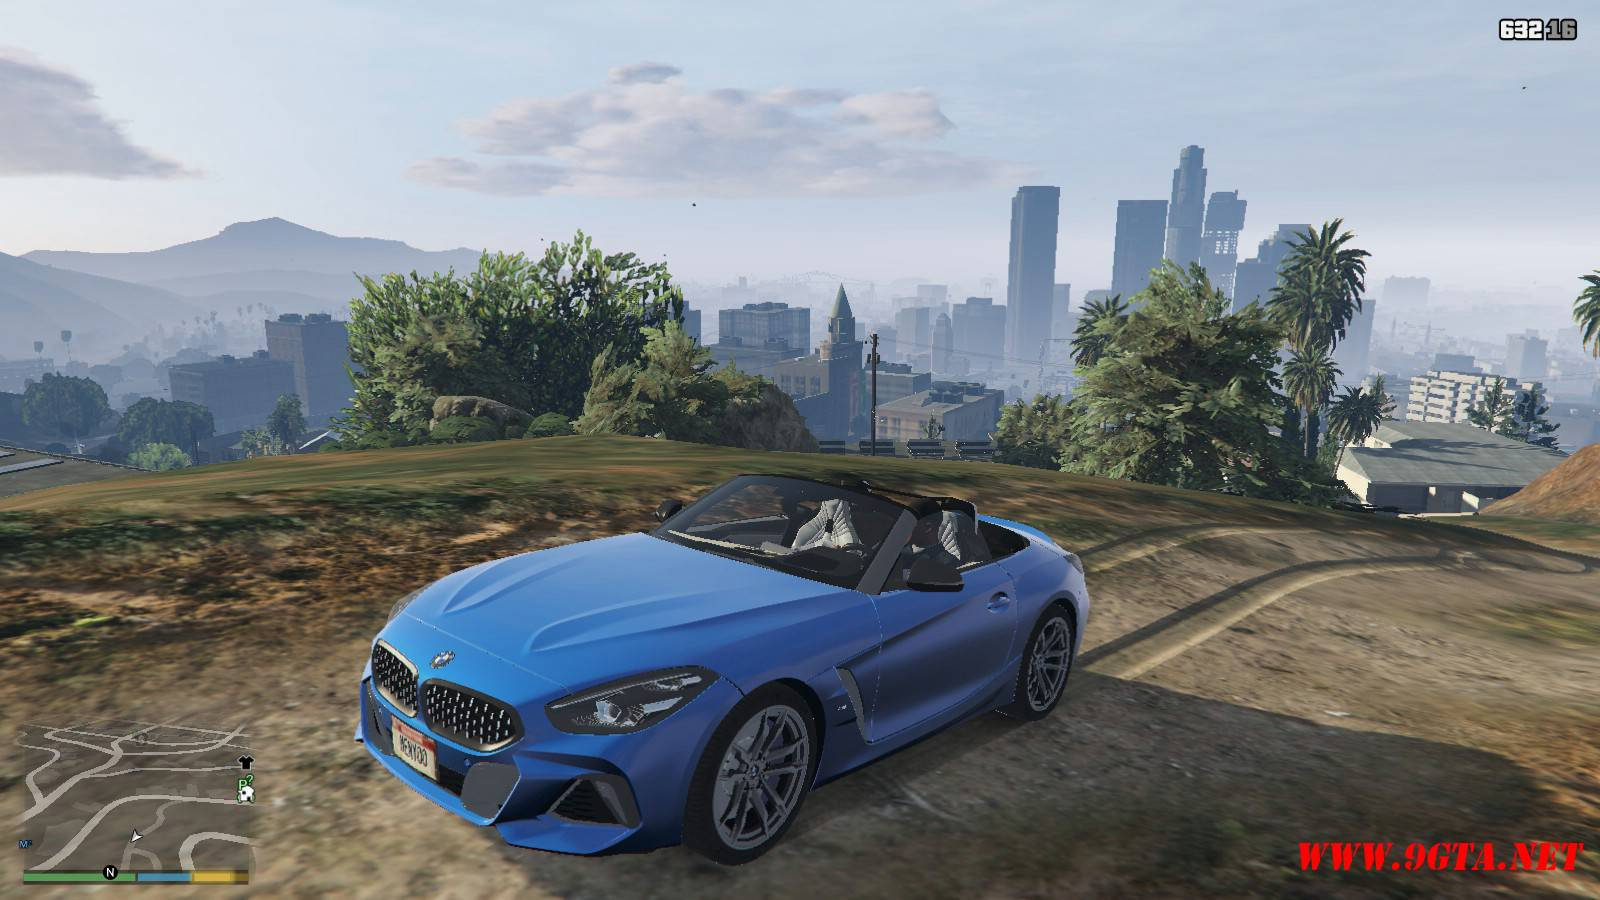 2019 BMW Z4 M40i v2.0 Mod For GTA5 (1)